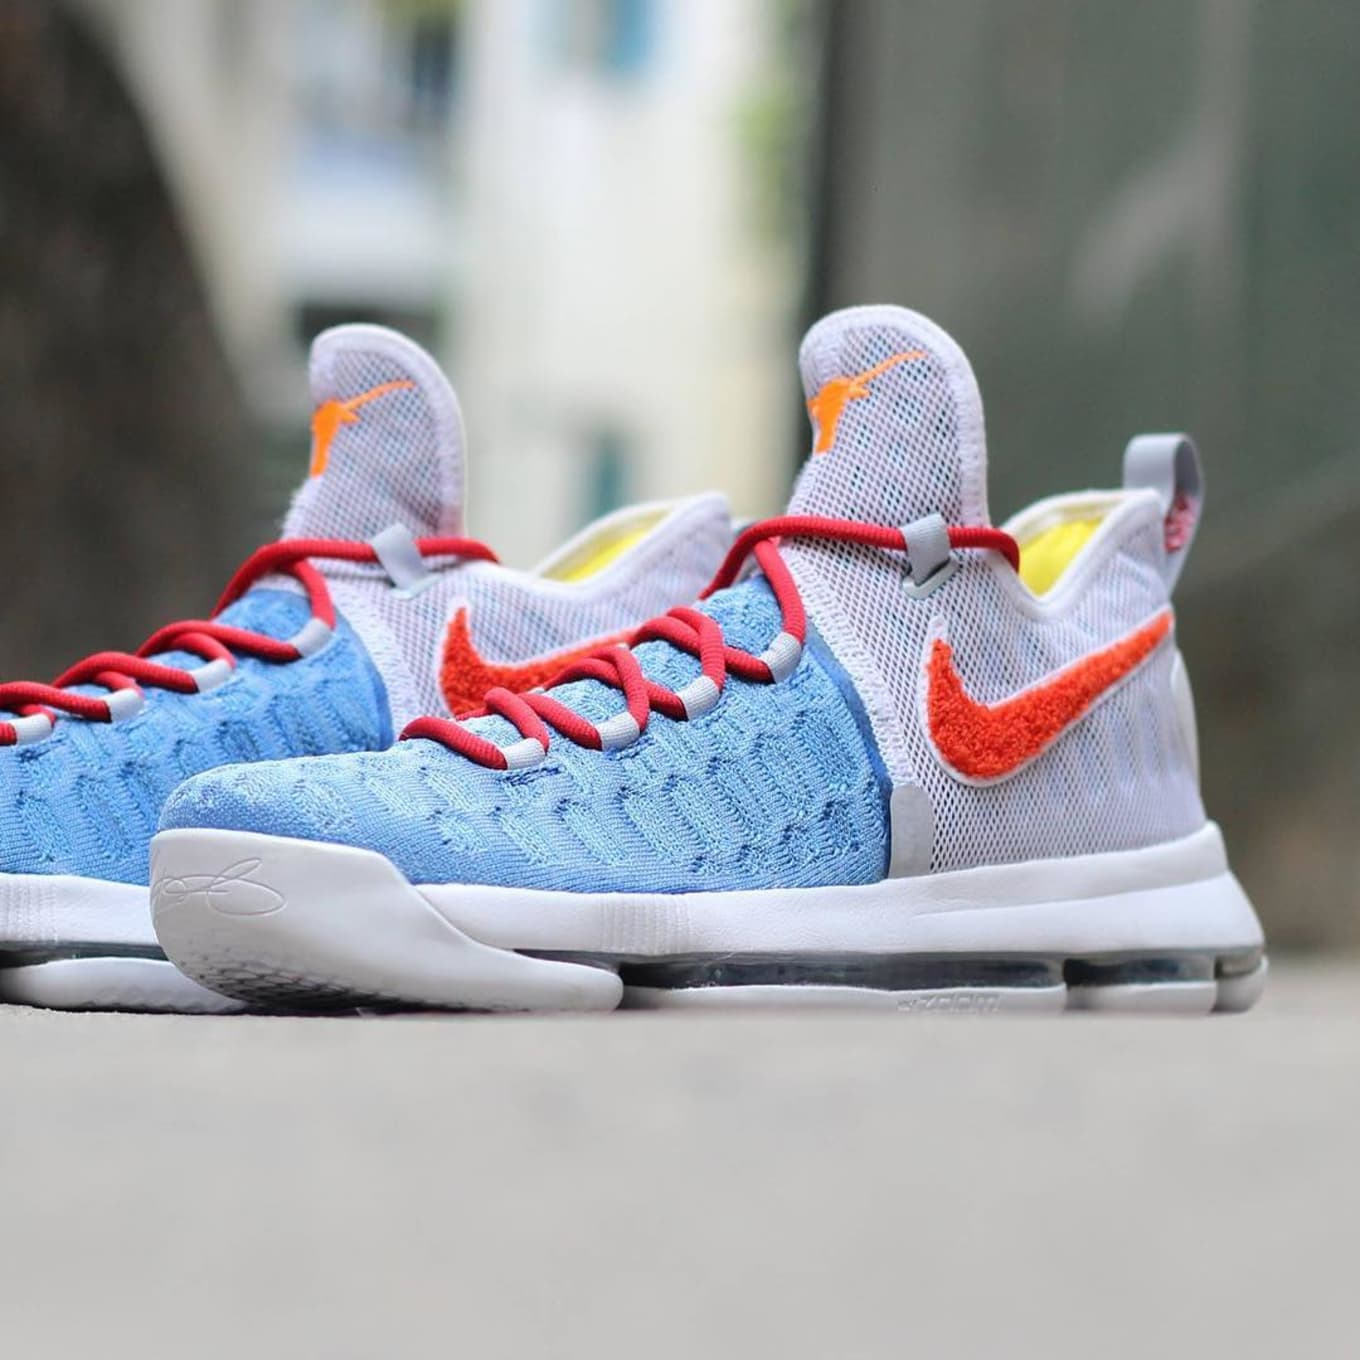 new product ecdb1 c54f7 A Completely Unexpected Nike KD 9 PE for the Texas Longhorns